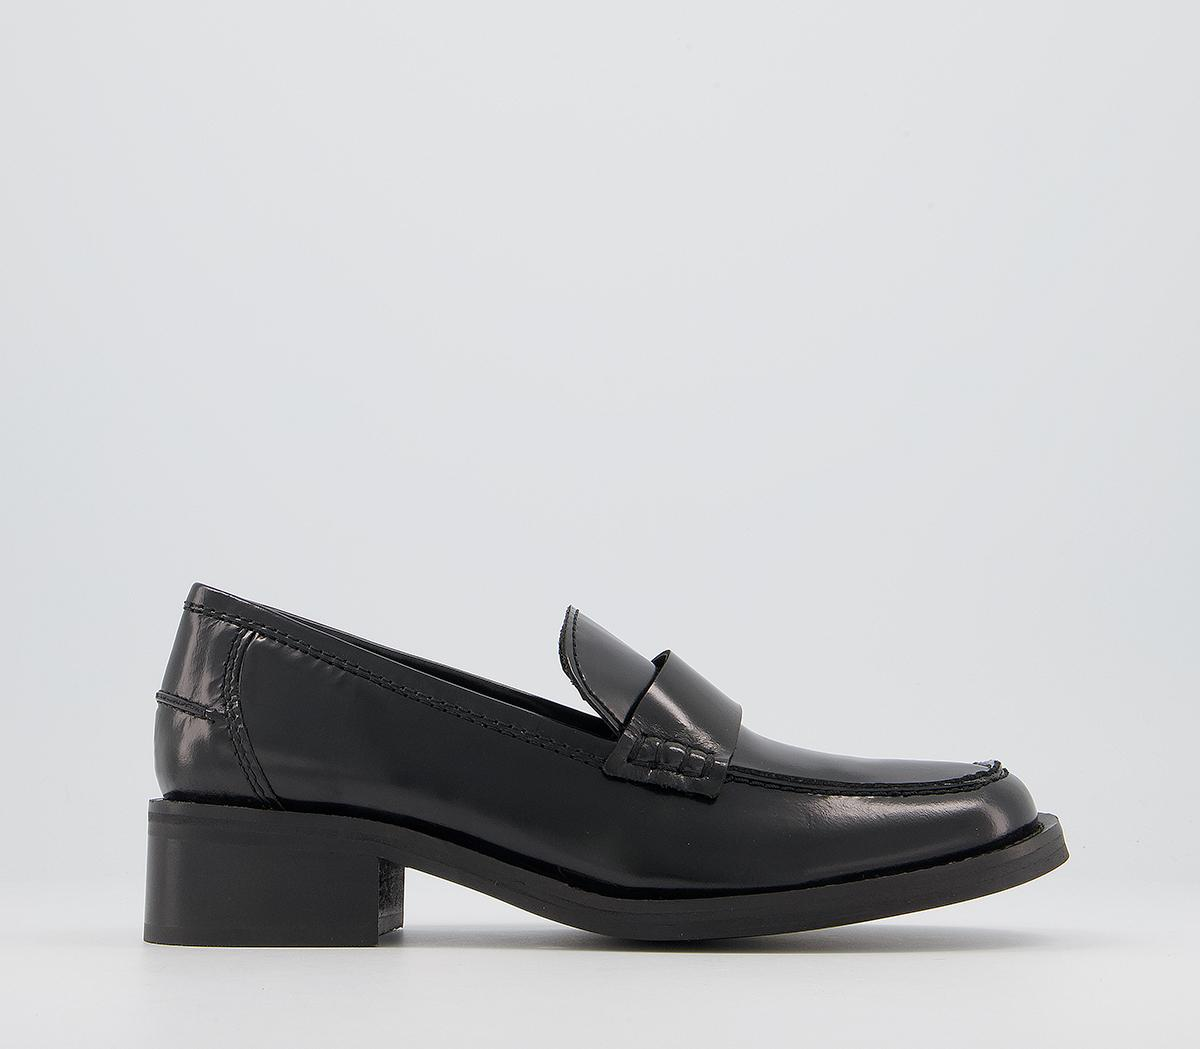 Featuring Loafers